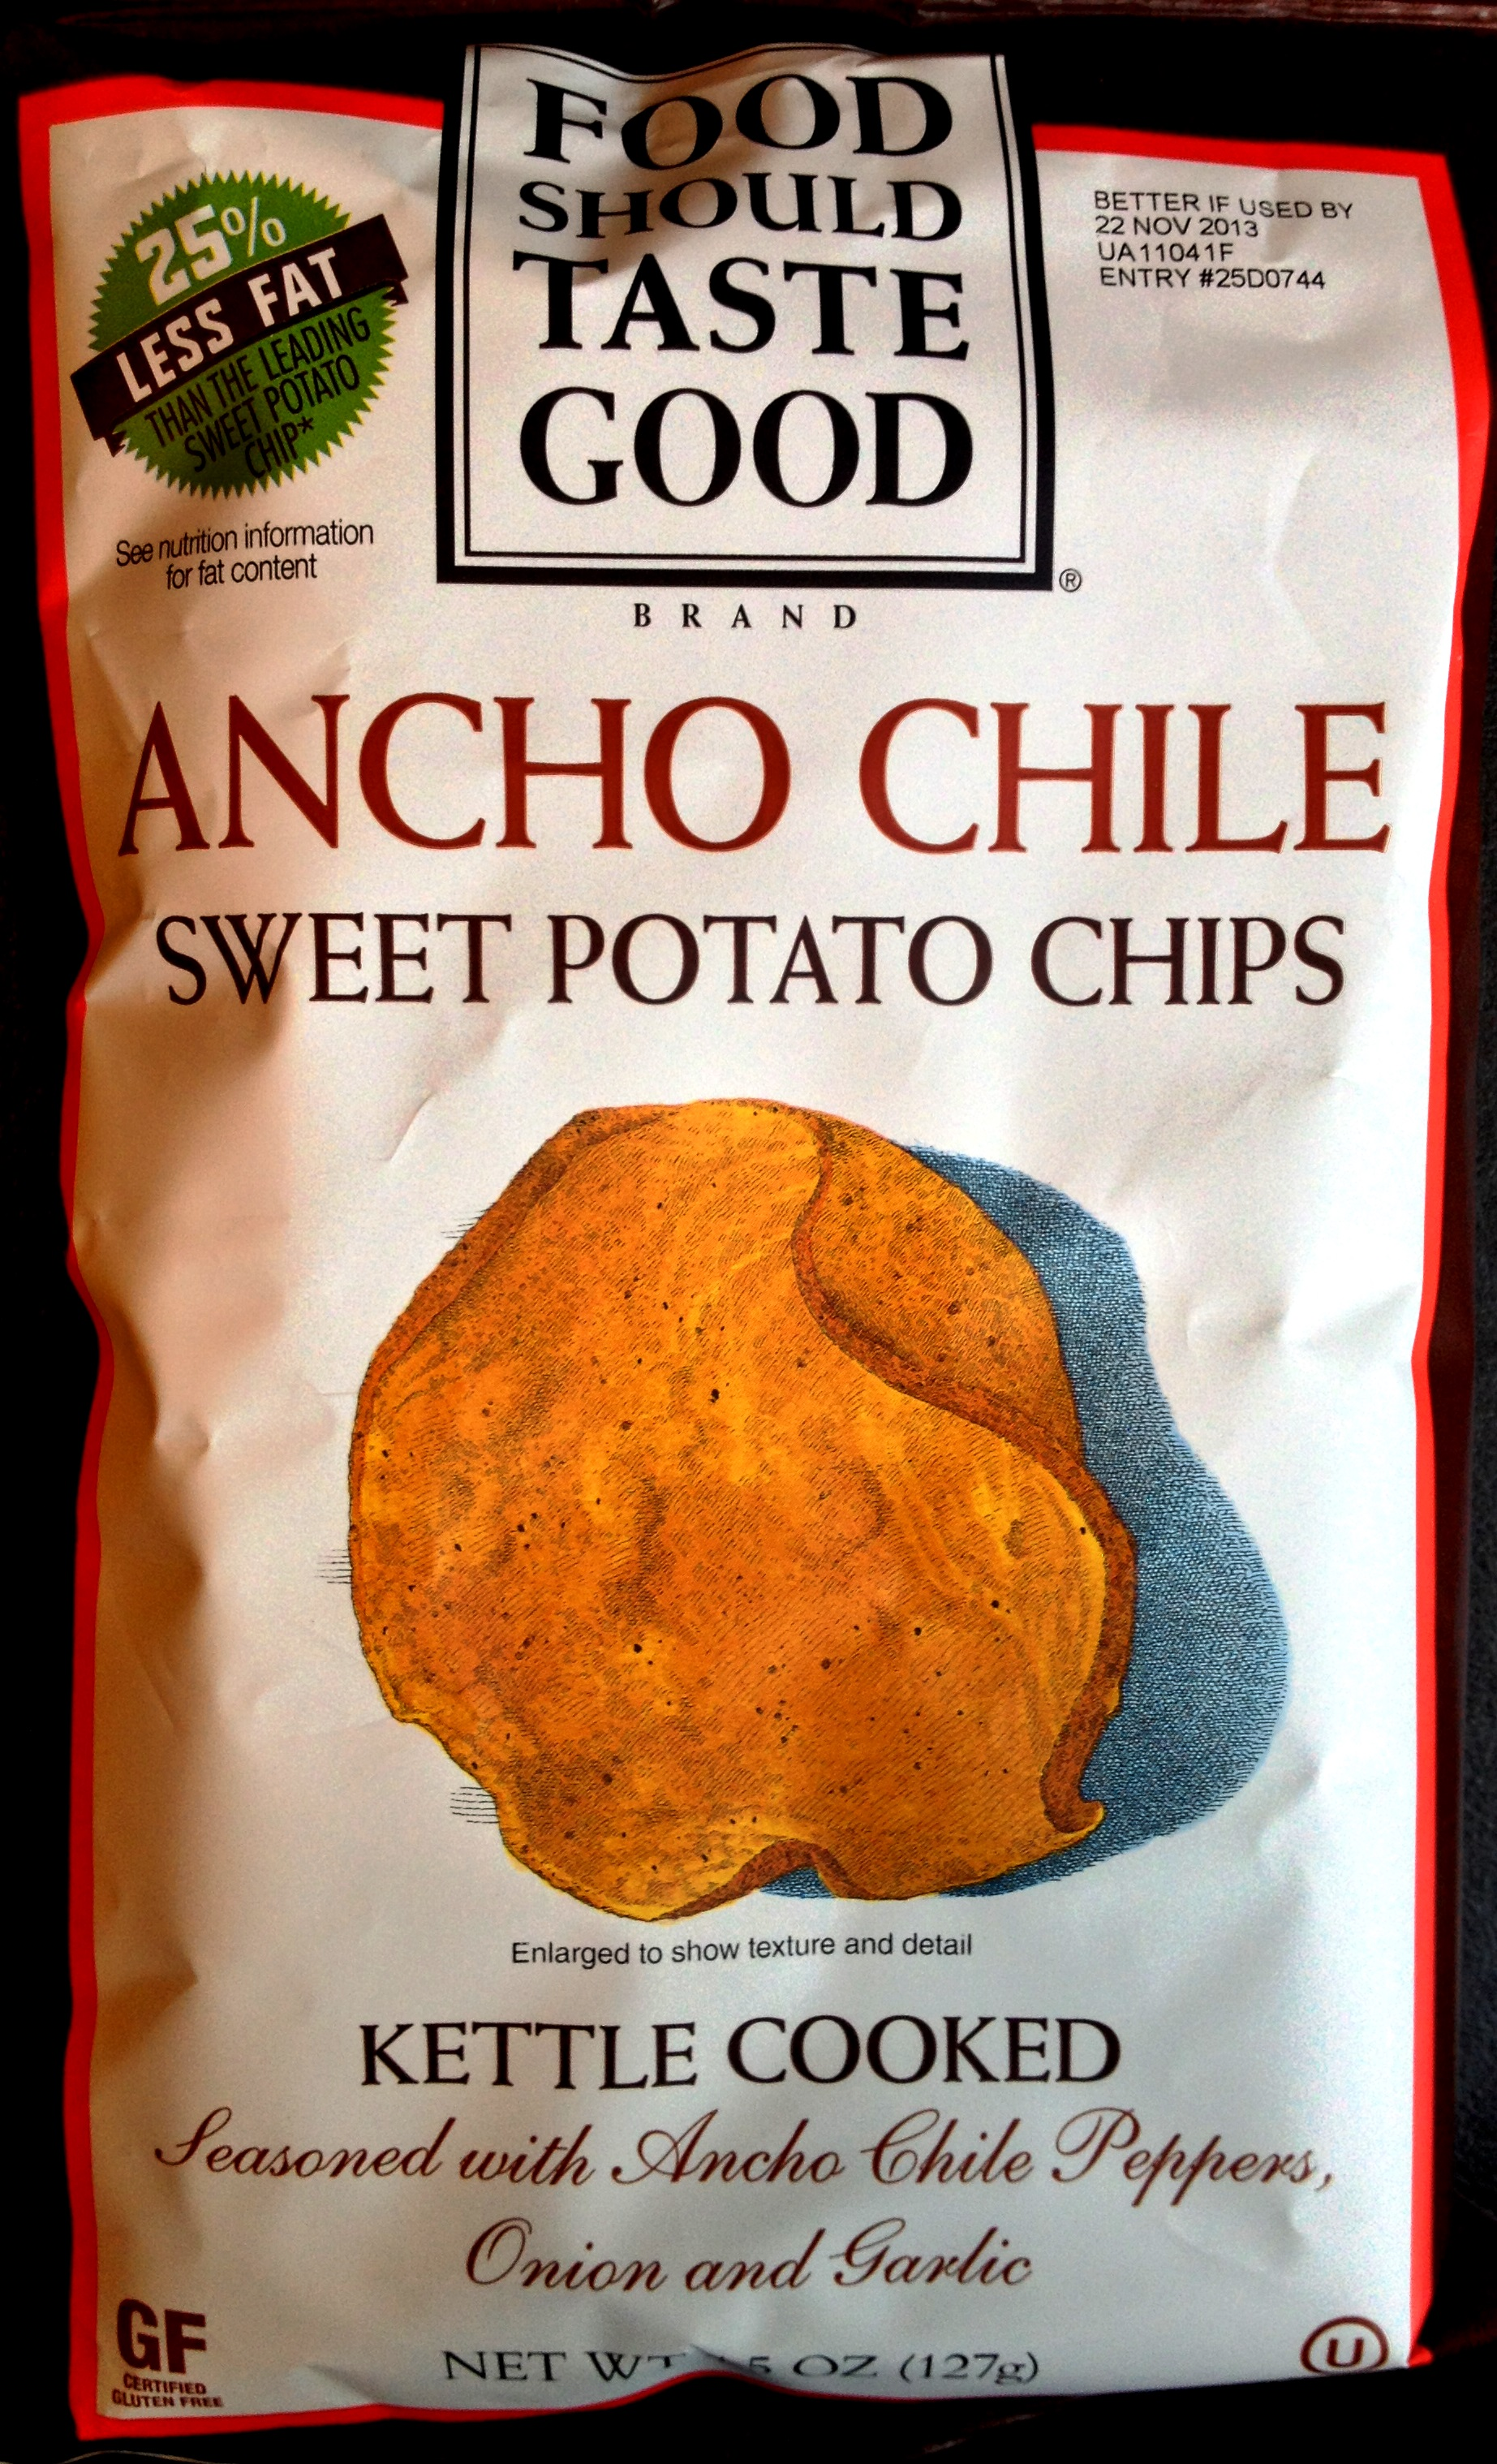 ... Should Taste Good – Ancho Chile Sweet Potato Chips | Chip Review